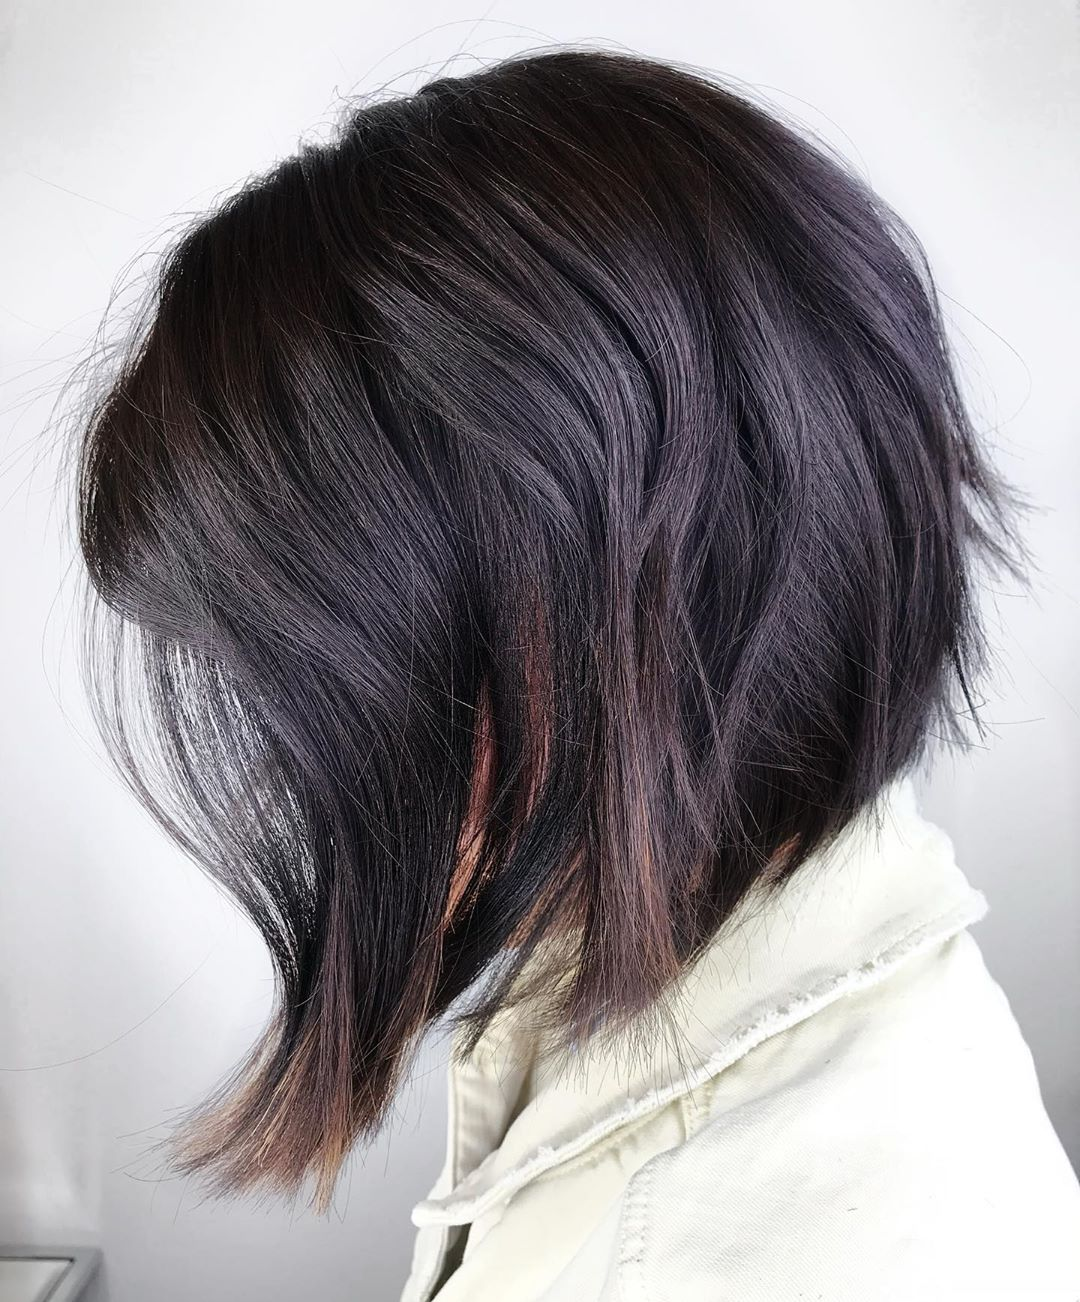 Dark Fall Hair Color with Subtle Balayage